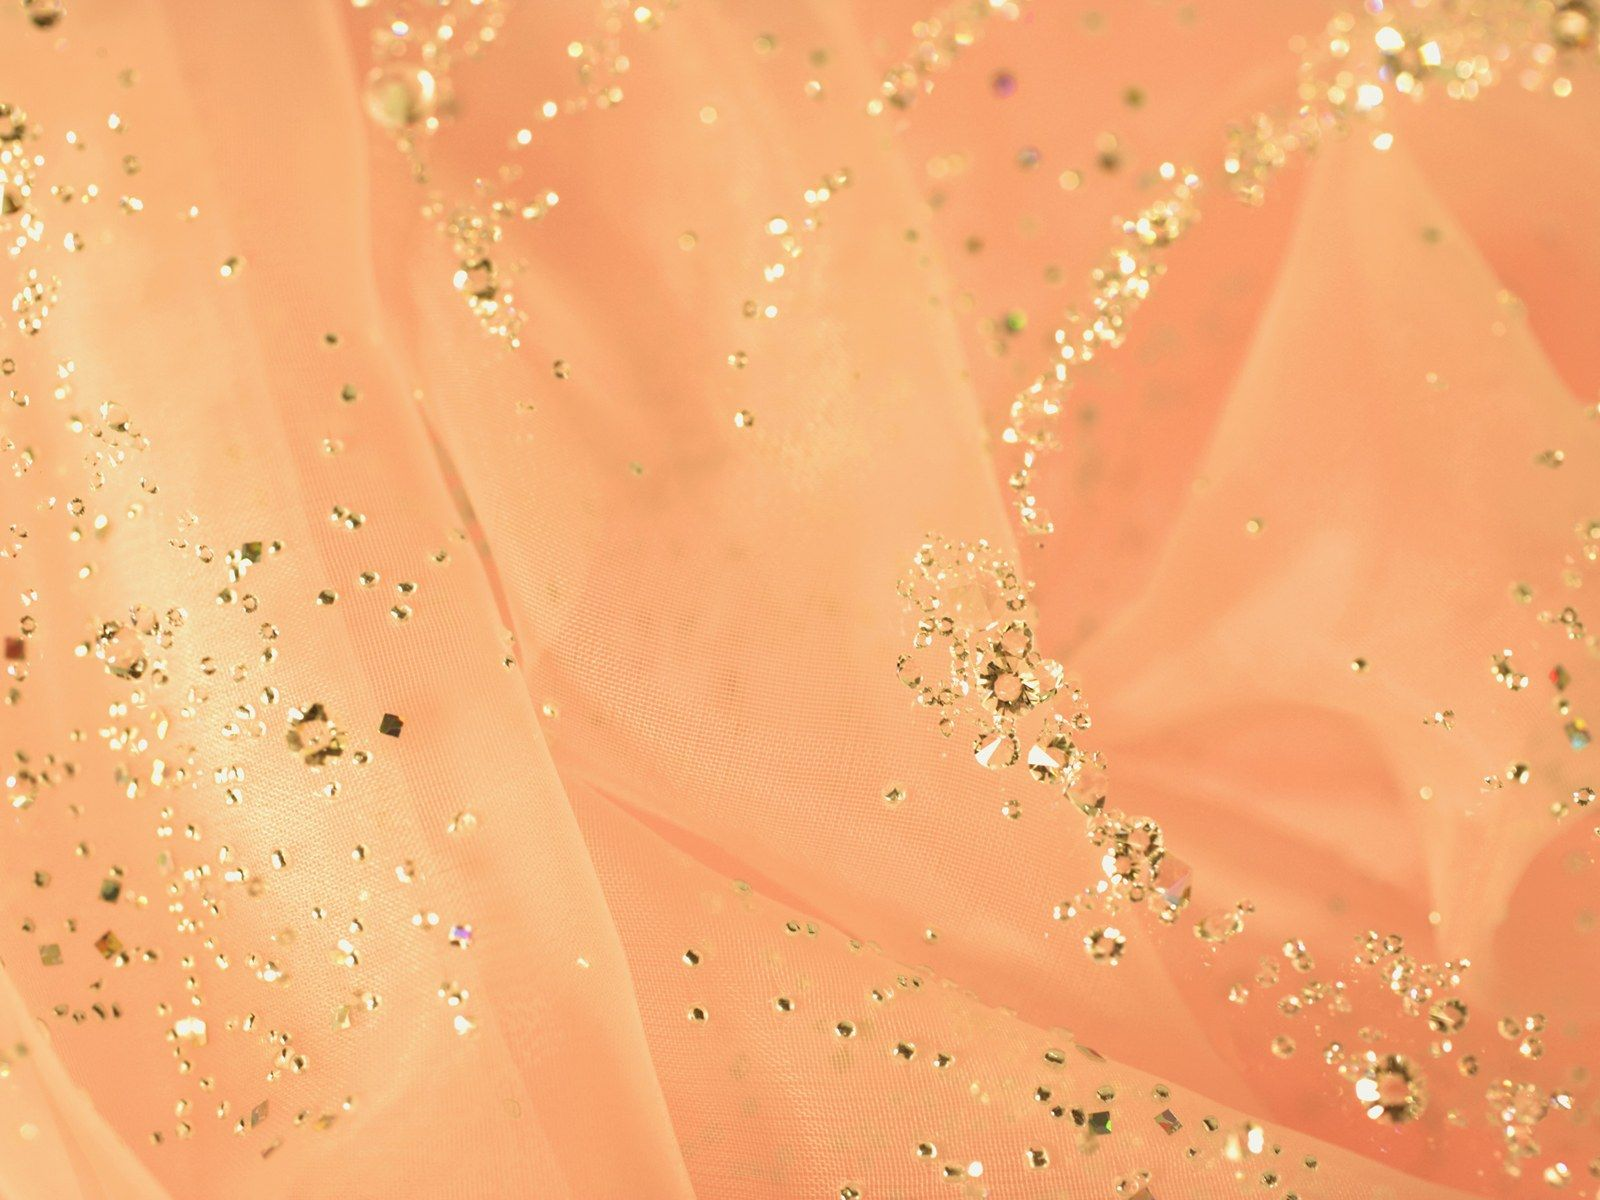 crystals and jewels sparkling romantic background gold glitter background rose gold glitter wallpaper romantic background jewels sparkling romantic background